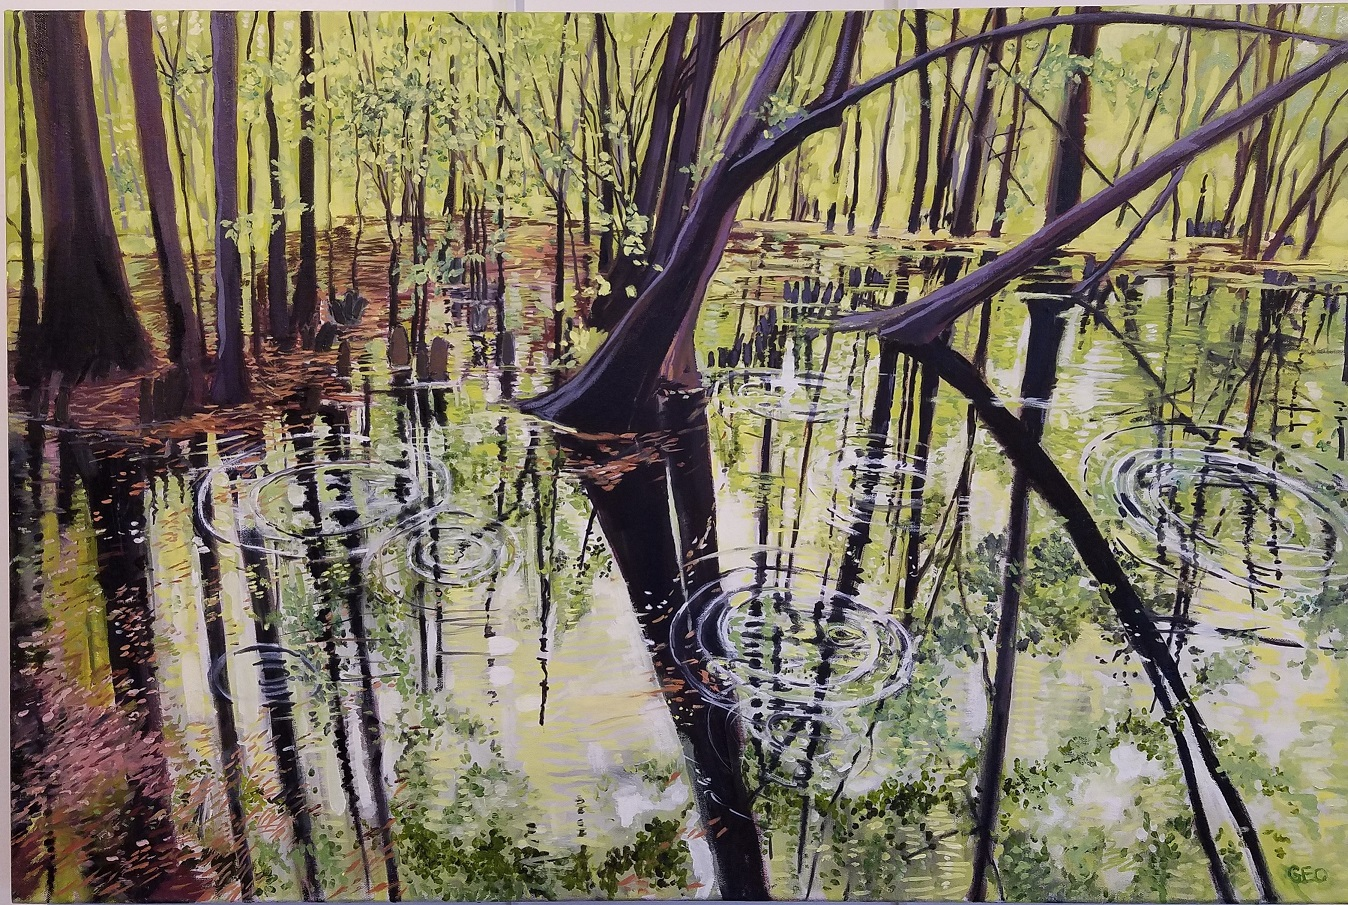 Pocomoke Spring 24 X 36 inches oil on ca